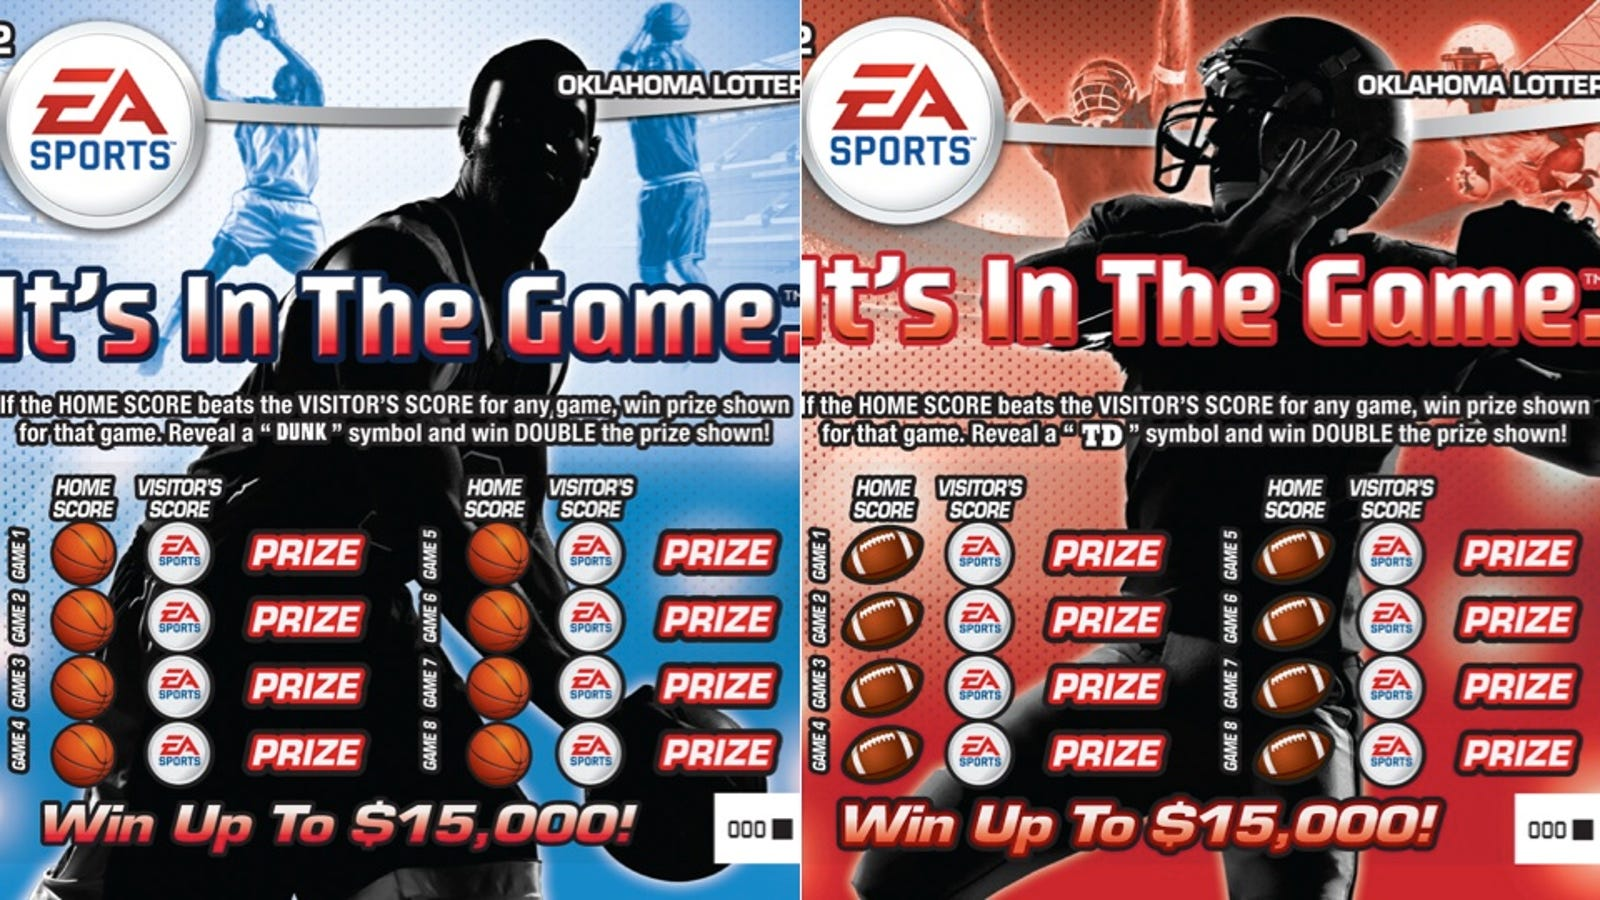 All It Takes is a Dollar and a Dream in EA Sports' Oklahoma